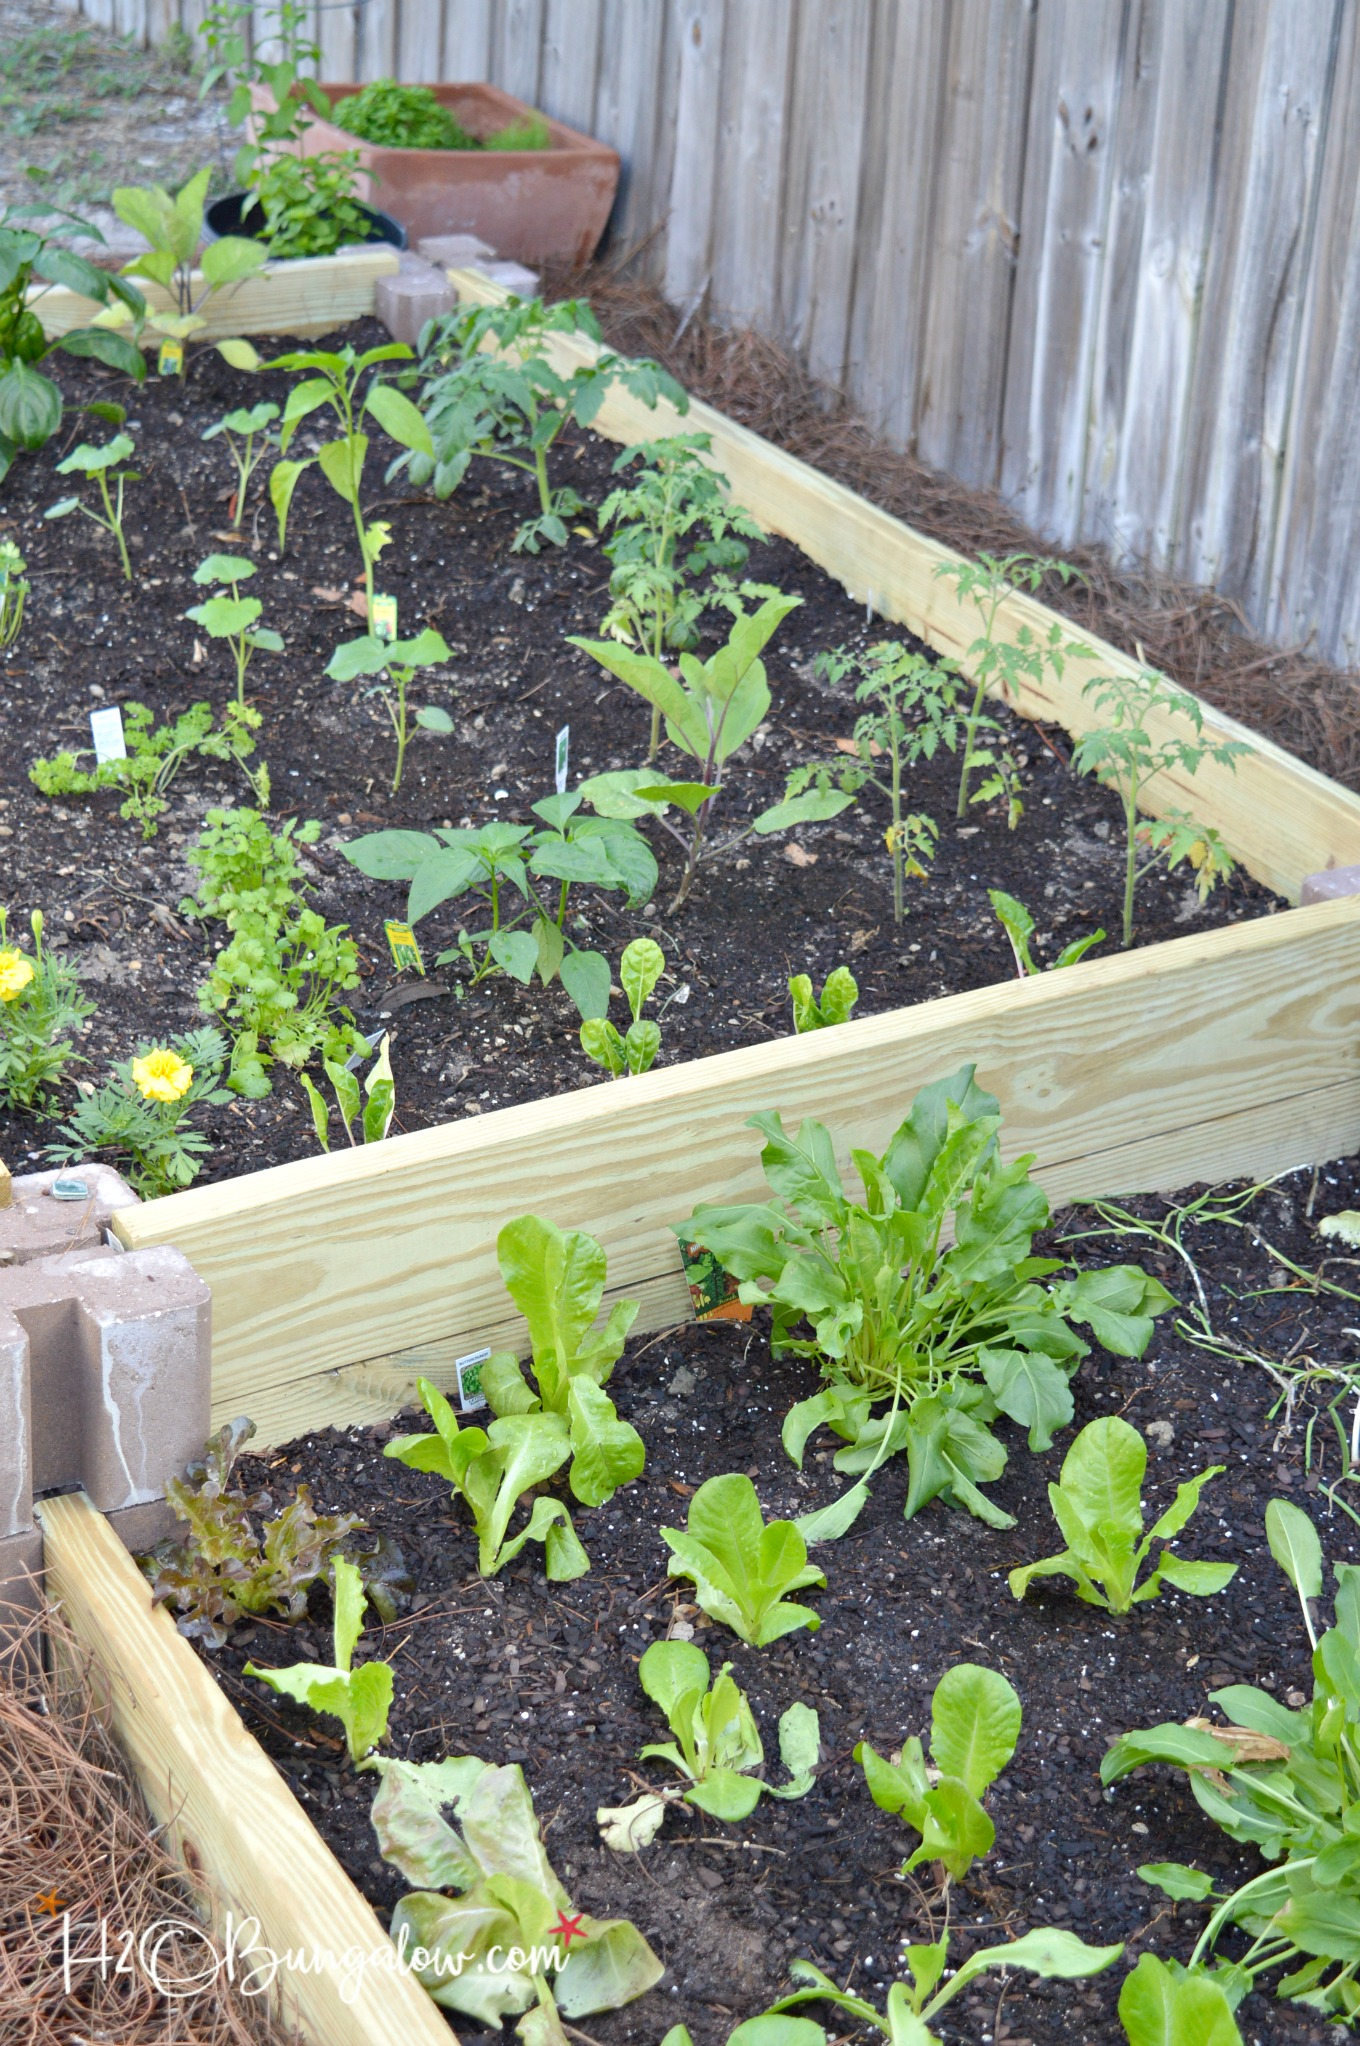 Instructions For Making Raised Garden Beds How To Build A Raised Vegetable Garden Bed H2obungalow